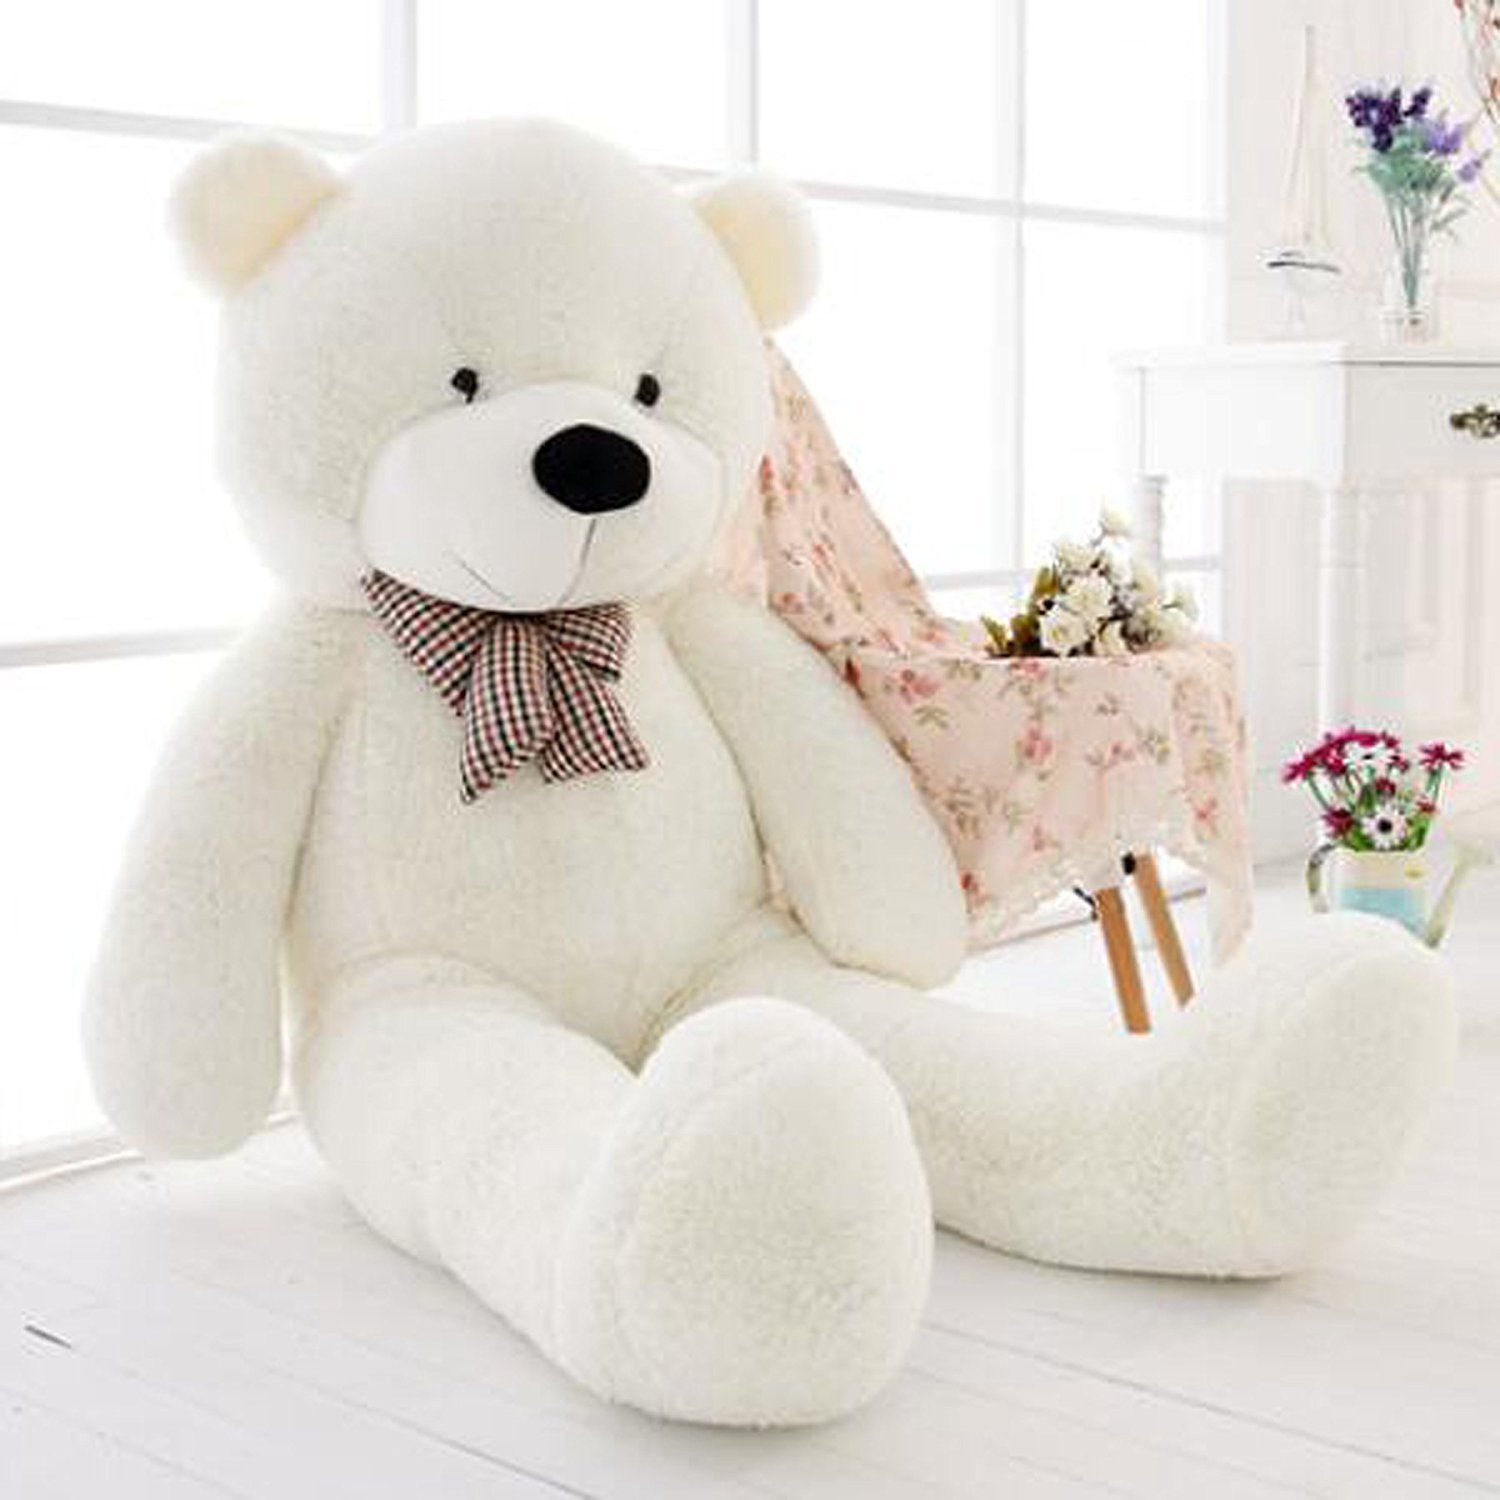 все цены на 47inch Giant Big Huge White Teddy Bear Plush Stuffed Soft Toys dolls Xmas Gift